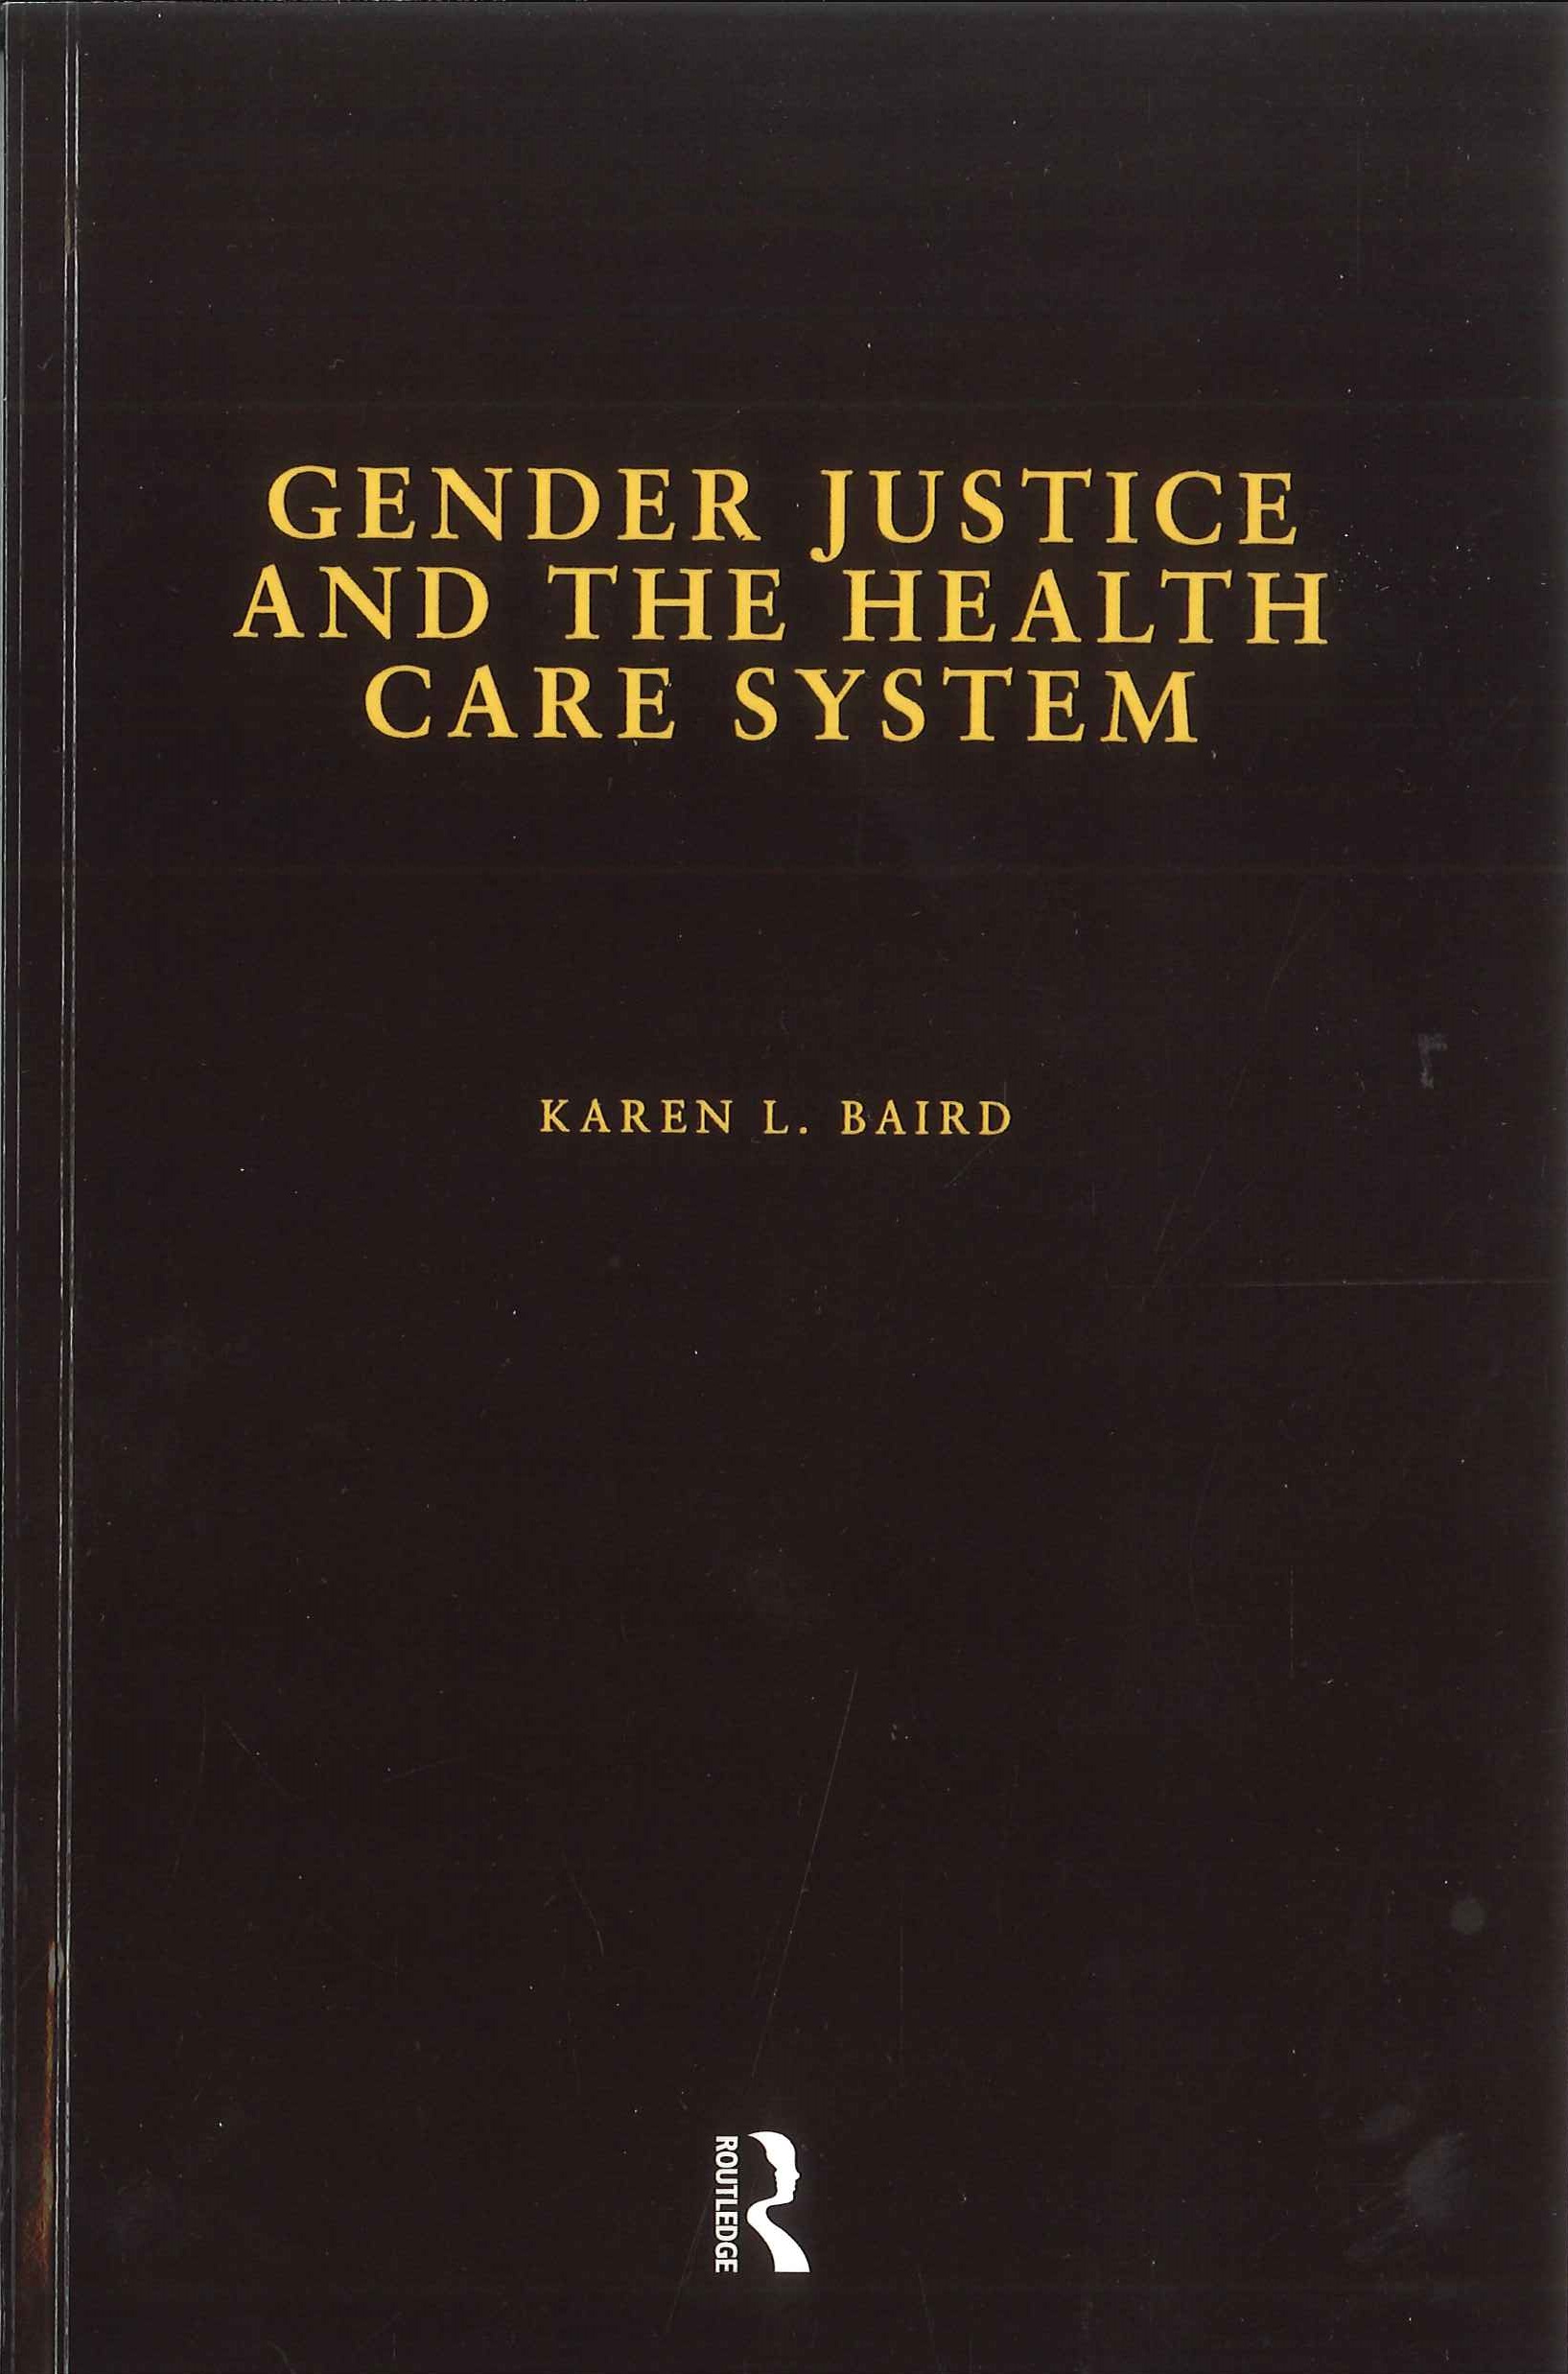 Gender justice and the health care system